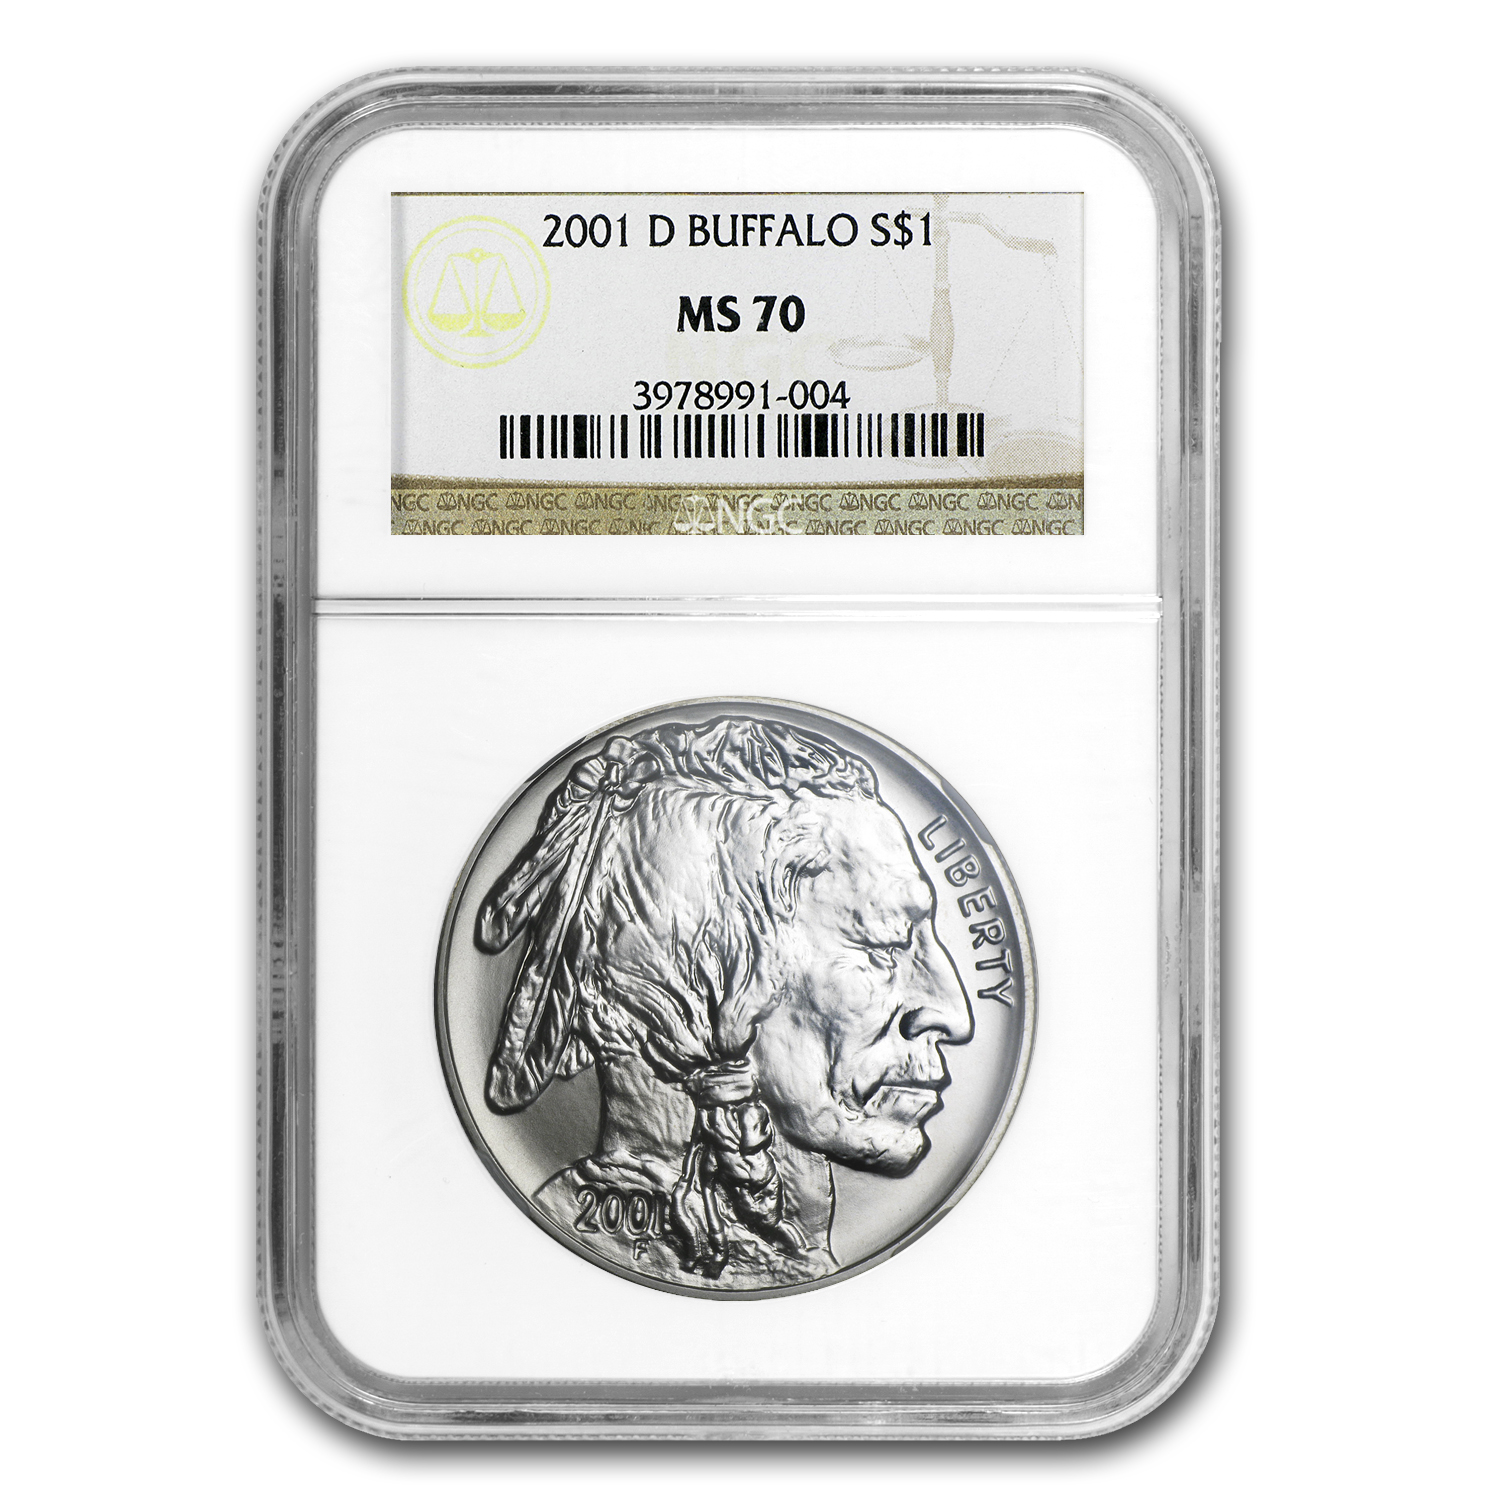 2001-D Buffalo $1 Silver Commem MS-70 NGC